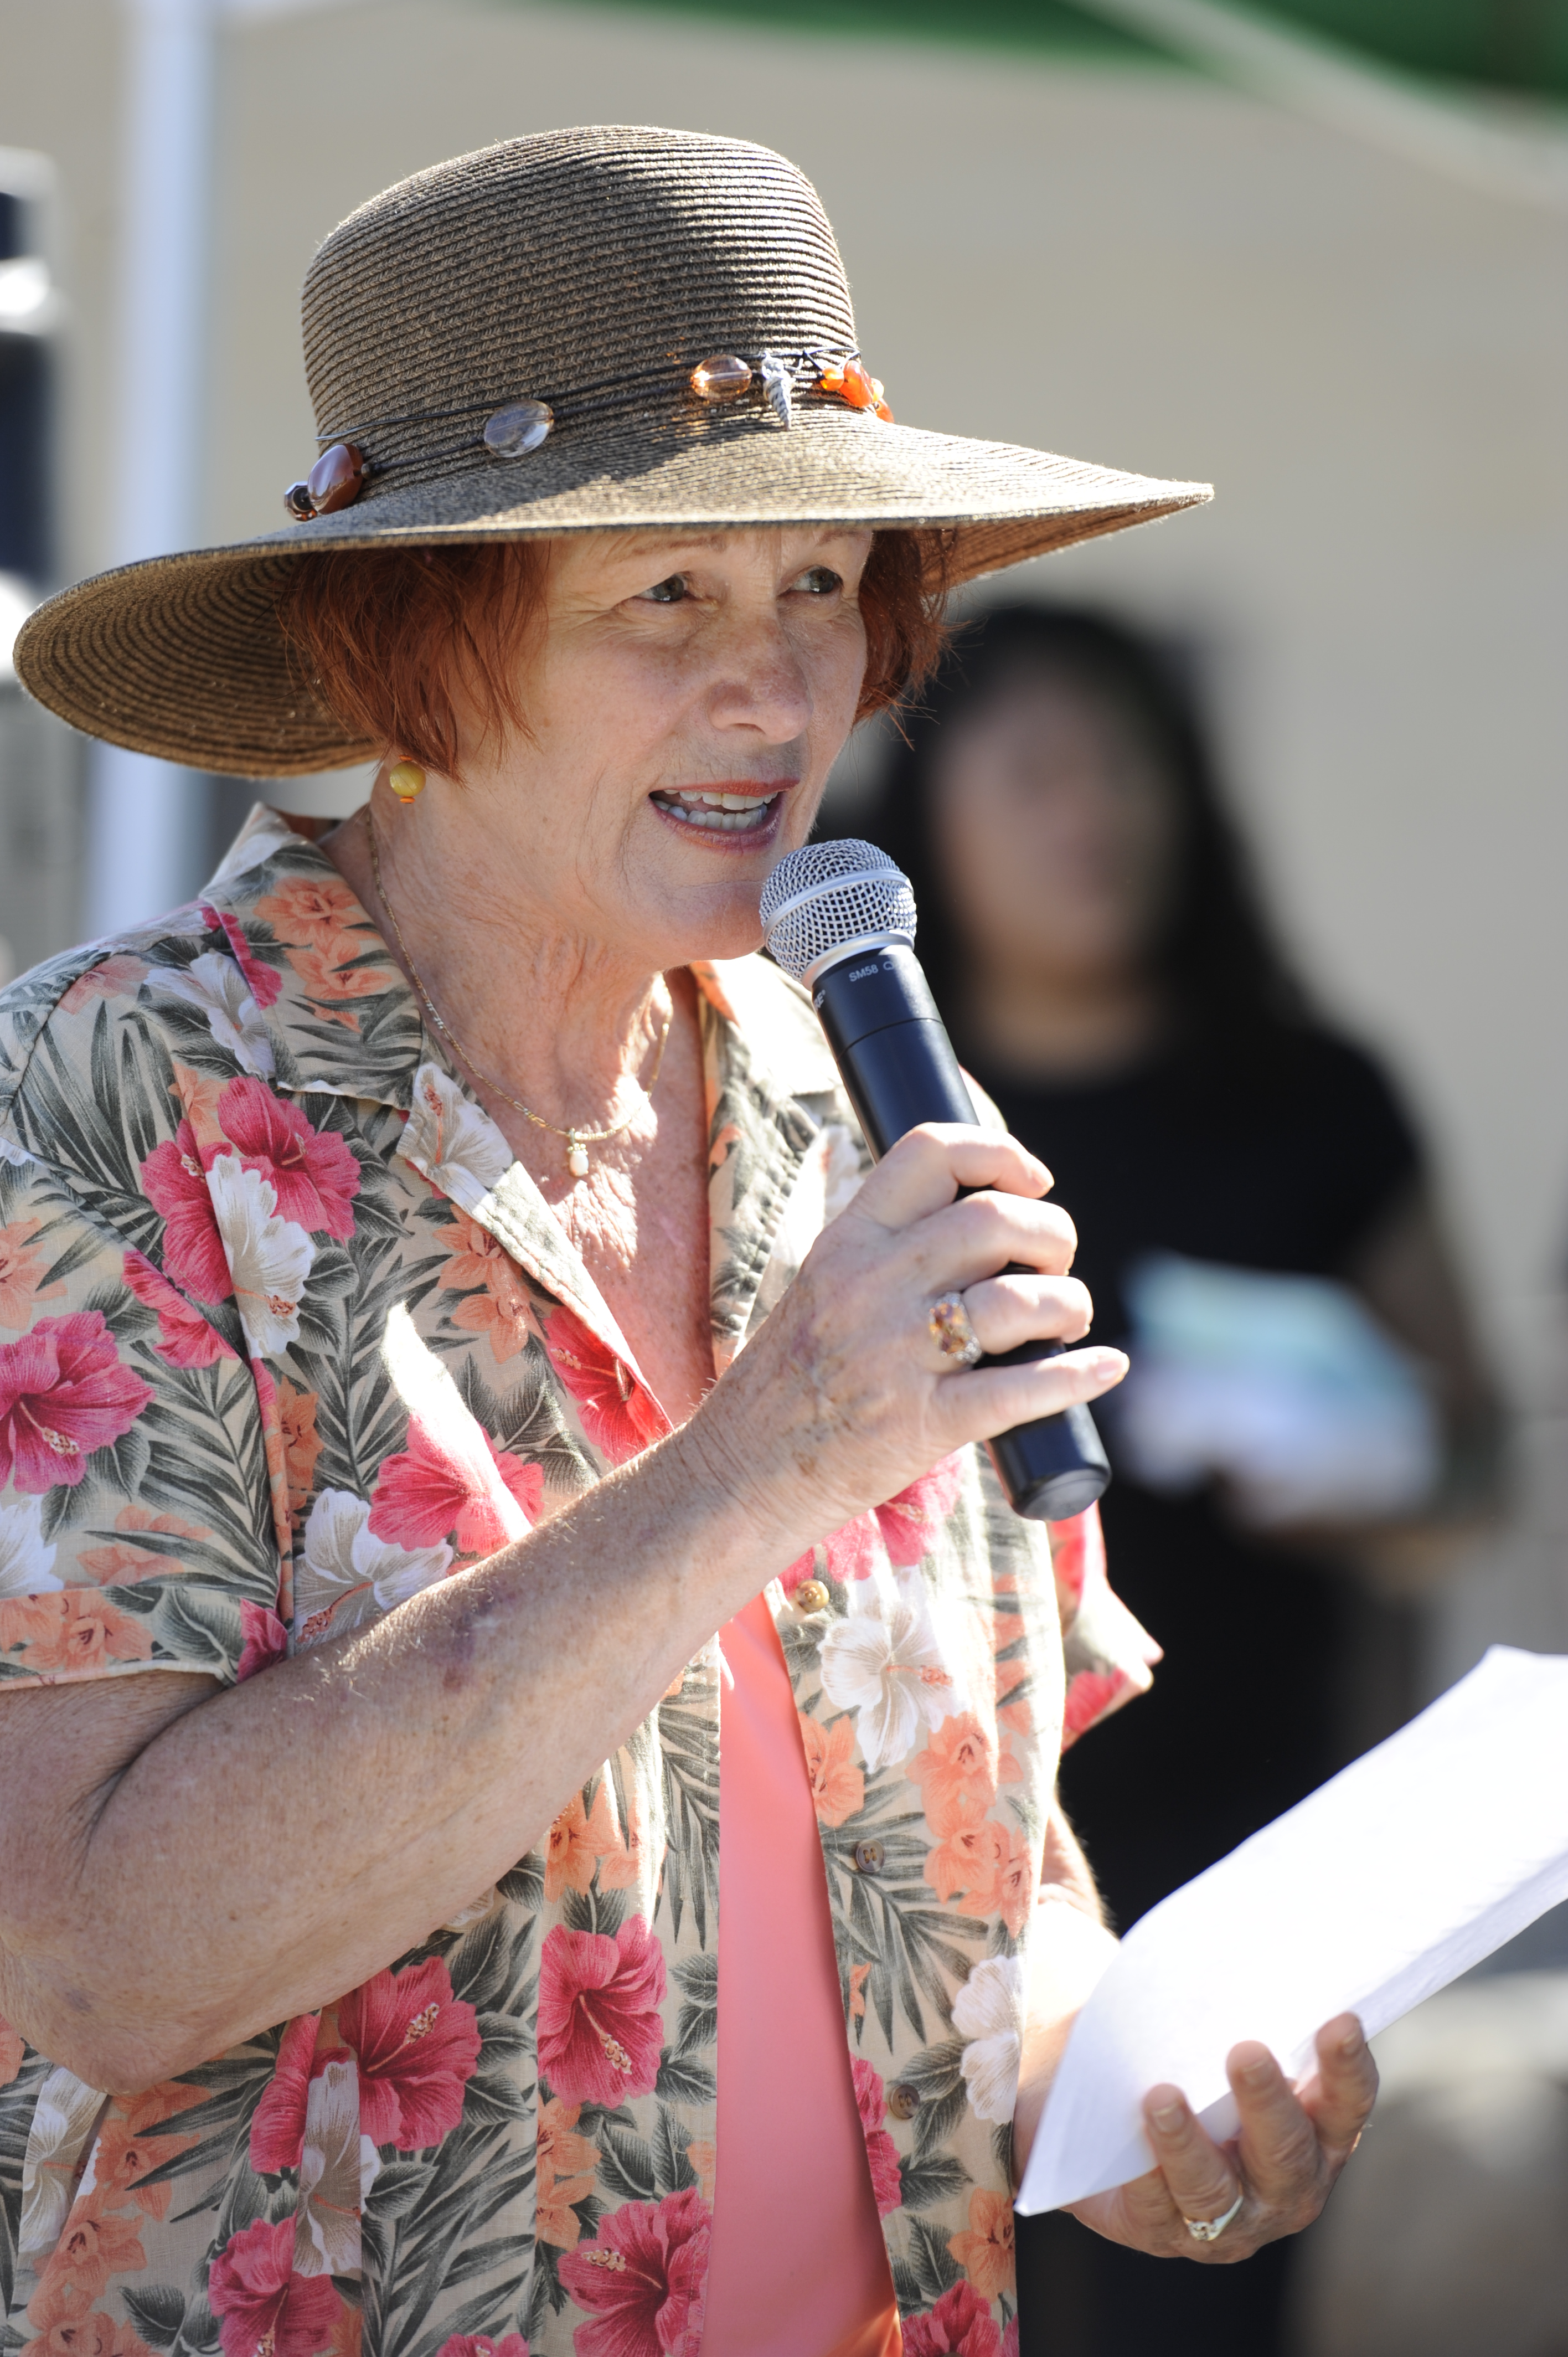 Woman holding a piece of paper and speaking into an microphone